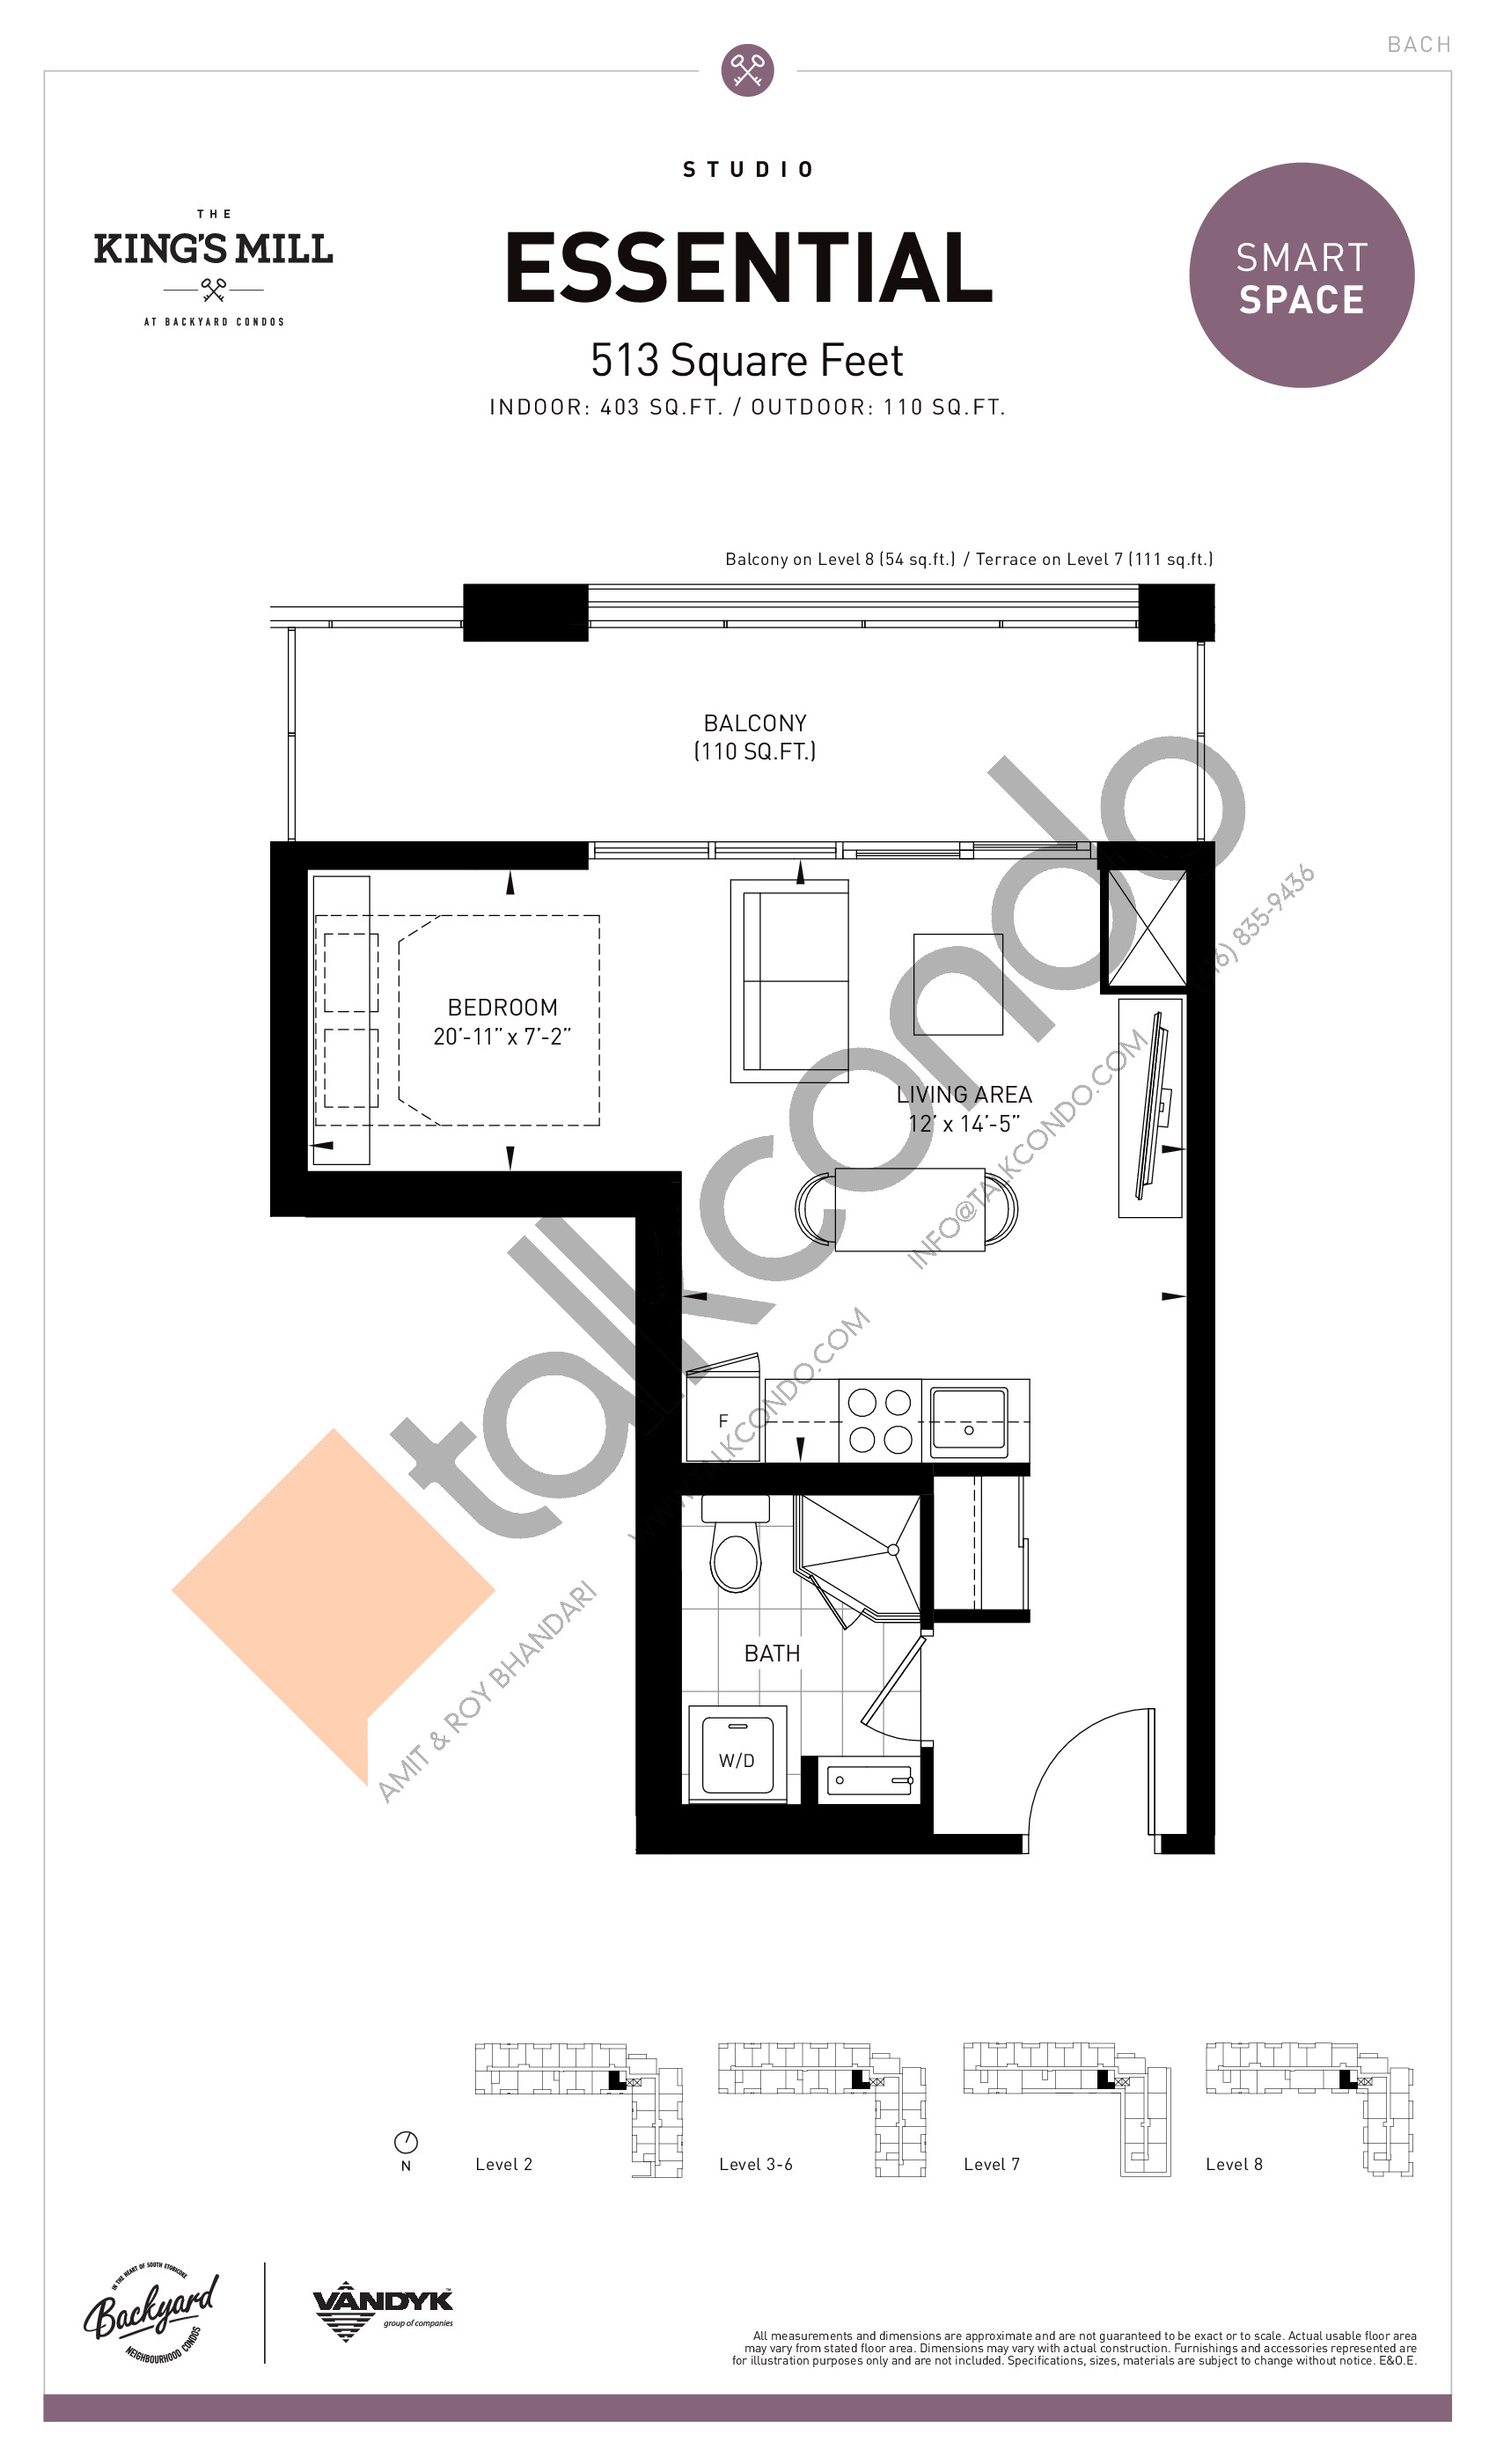 Essential Floor Plan at The King's Mill Condos - 403 sq.ft